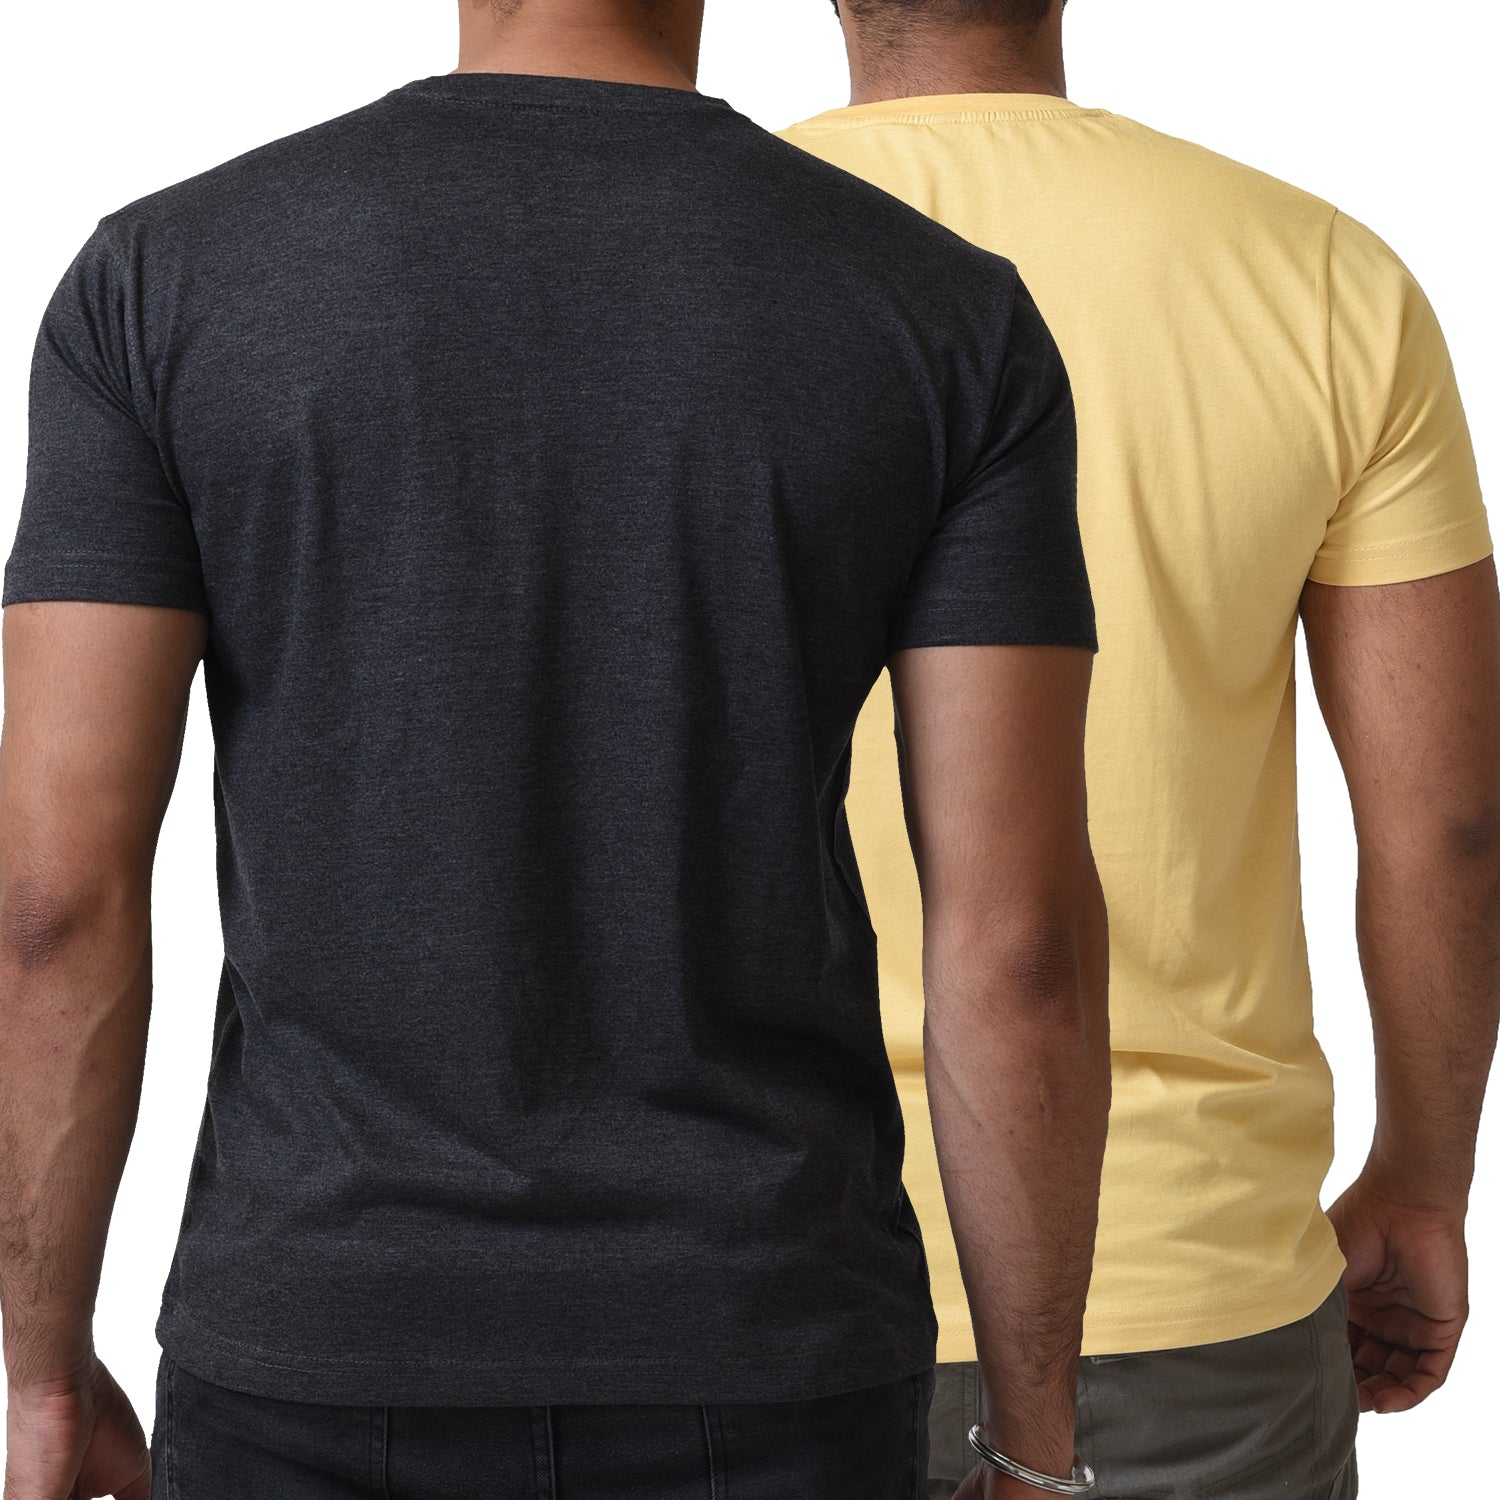 BASIC COMBO TSHIRT CARAMEL & CHARCOAL GREY